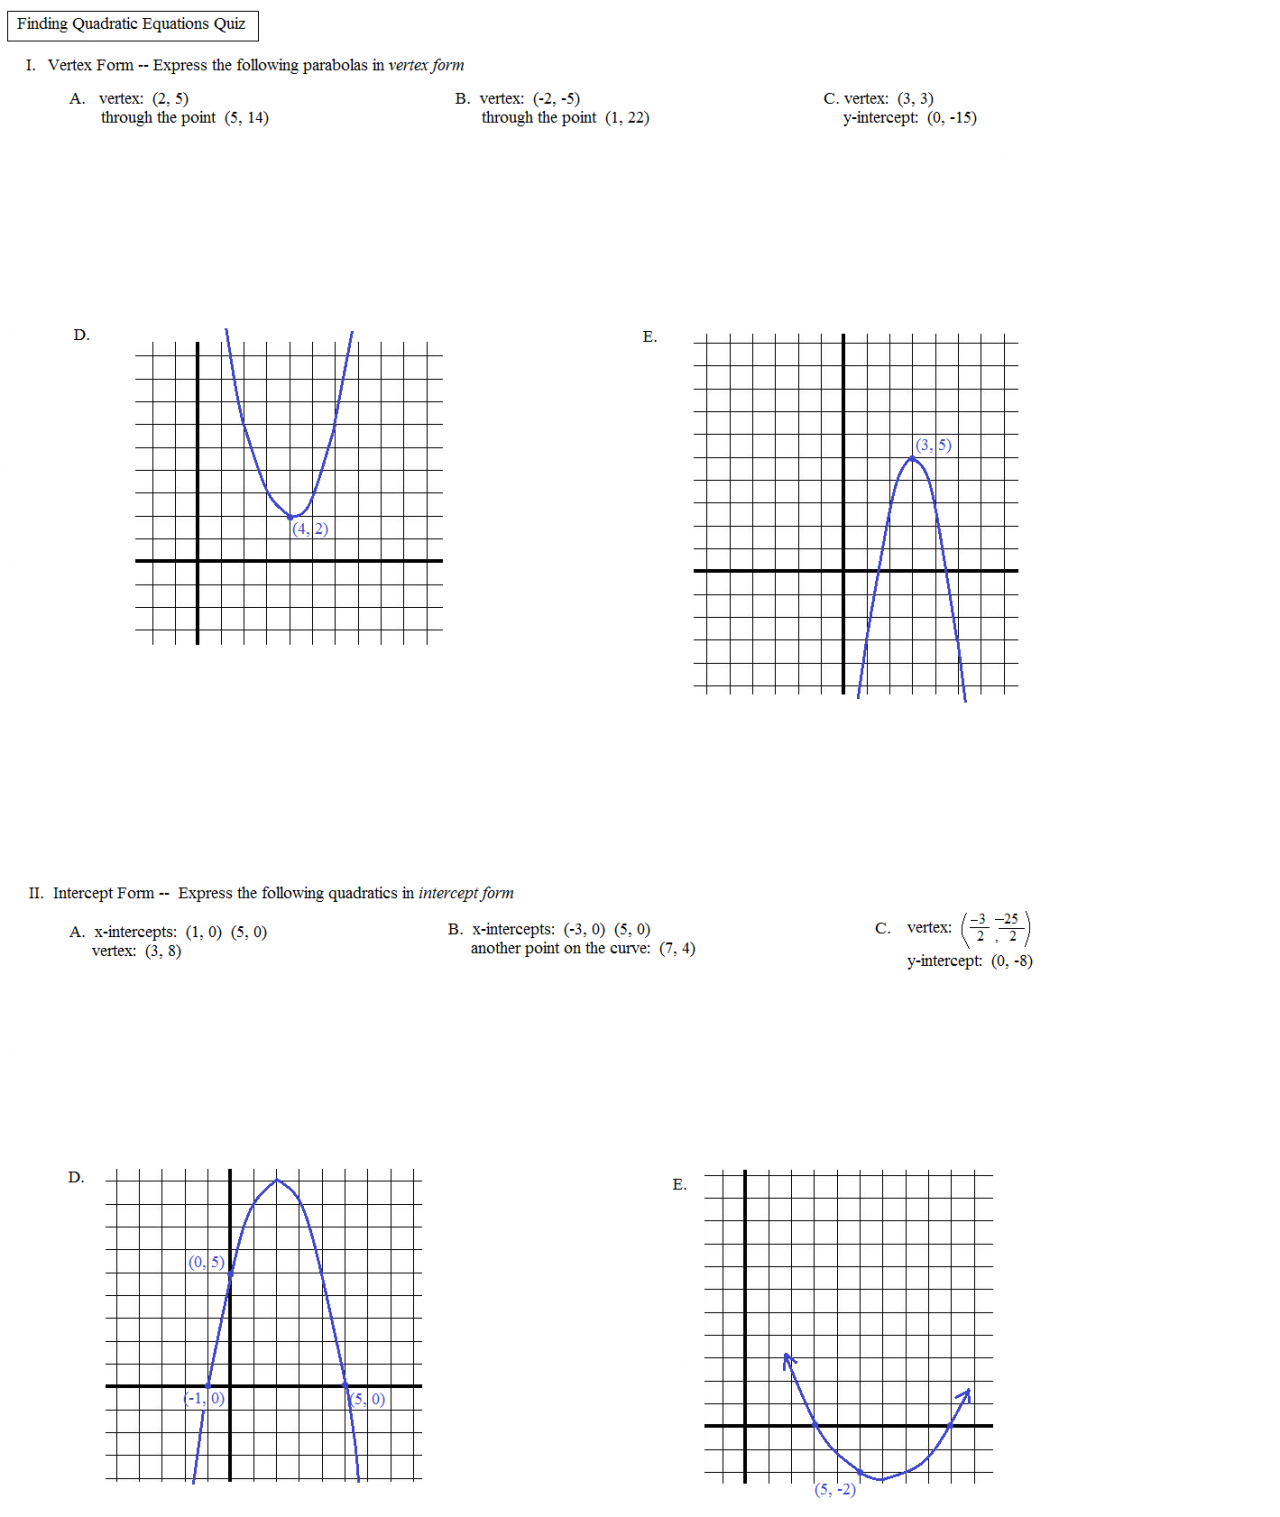 Quadratic Equation Worksheet Answers - Deployday